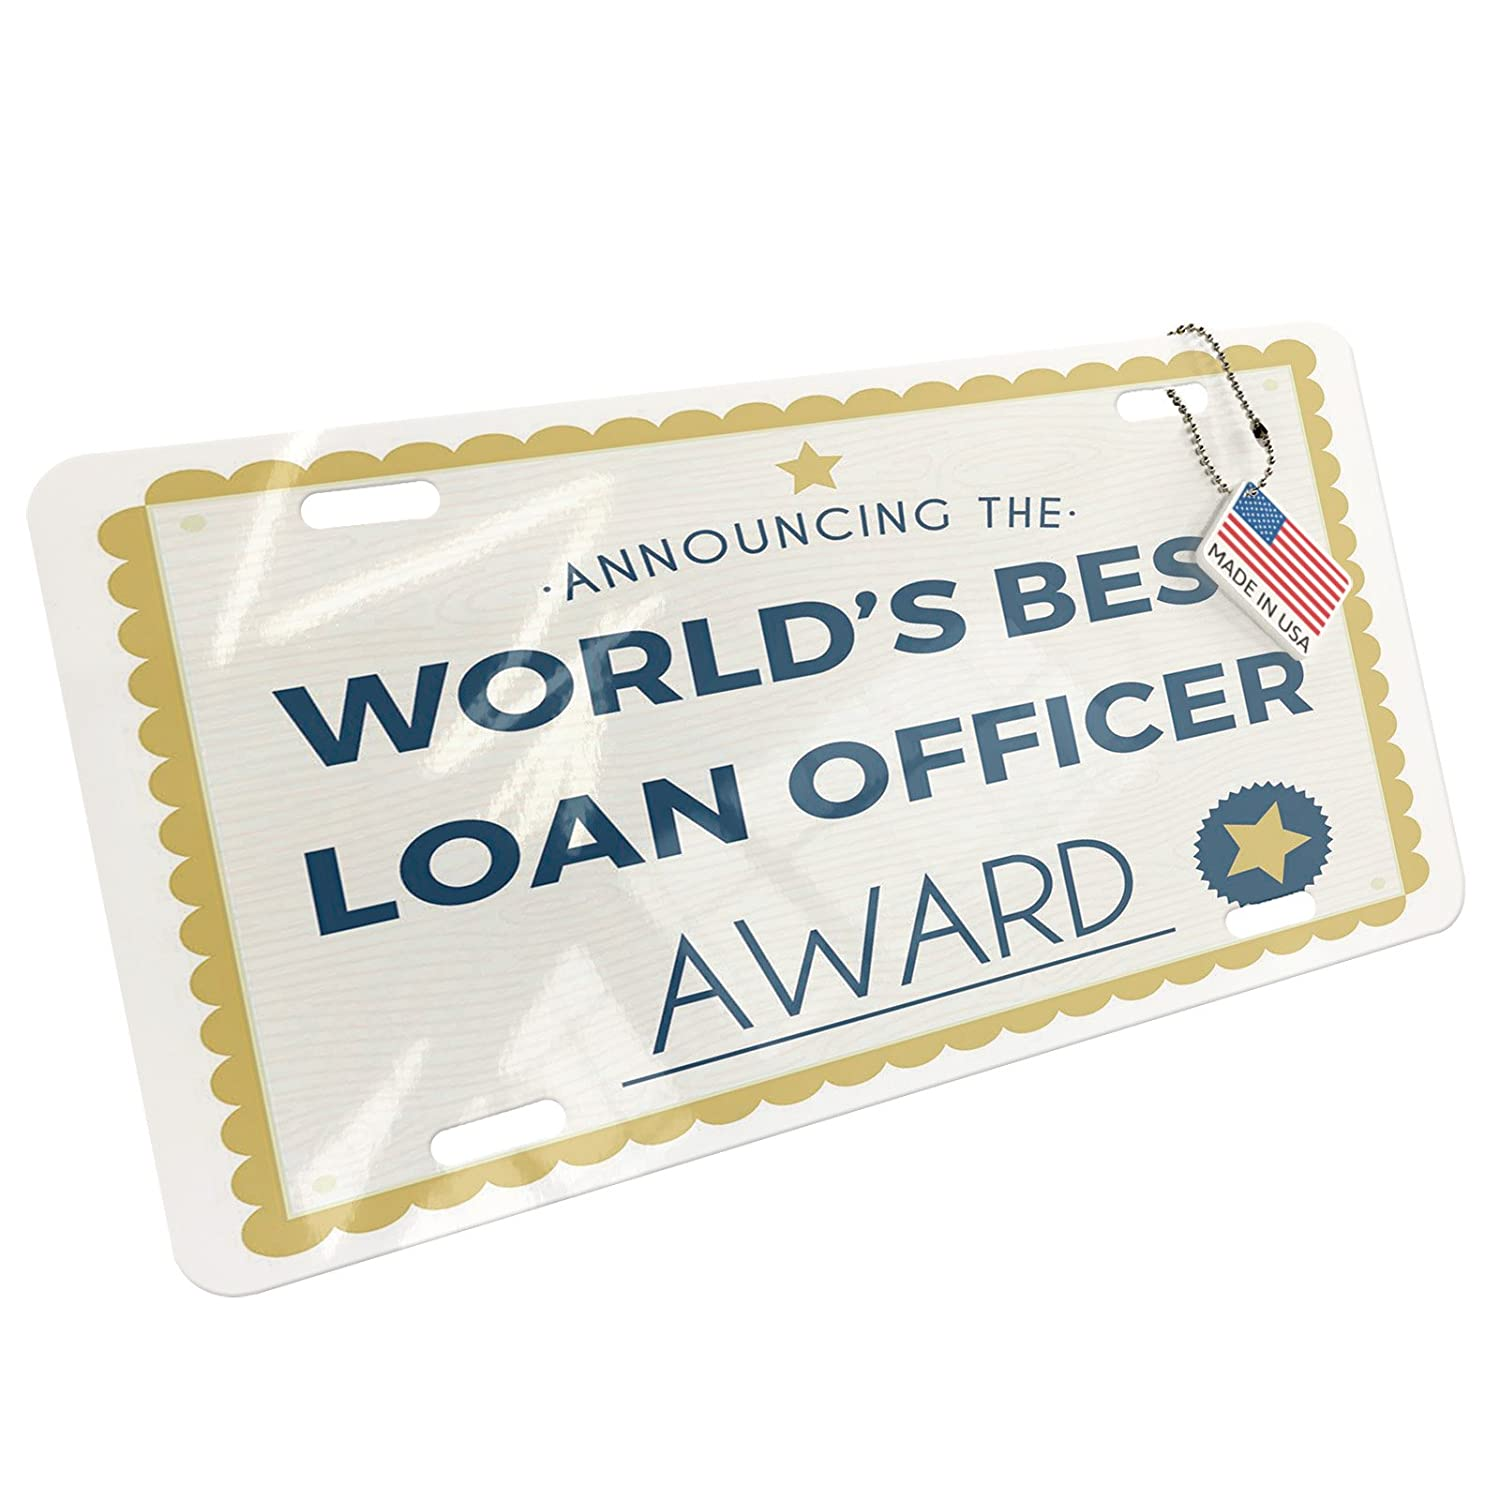 Amazon Neonblond Metal License Plate Worlds Best Loan Officer